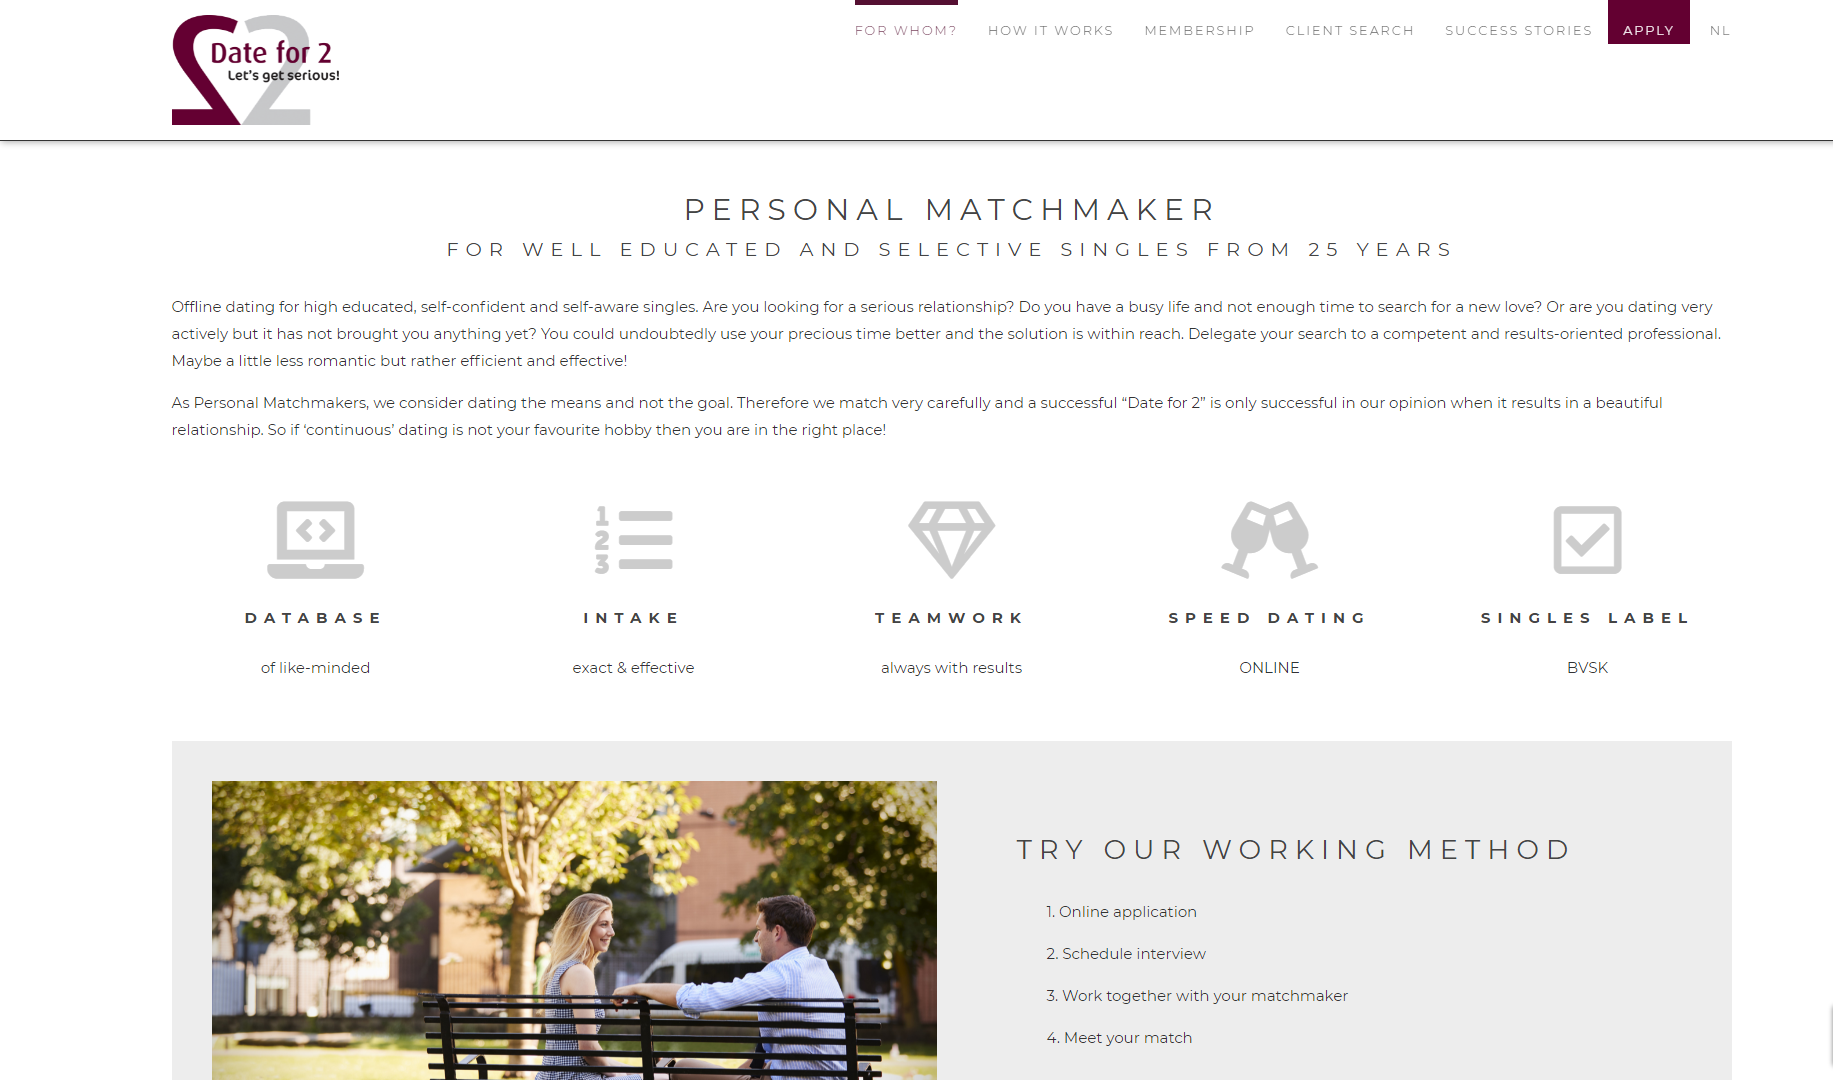 Maya Starykava, Owner and Personal Matchmaker at Date for 2, Shares Her Professional Matchmaking Story and How She Uses SmartMatchApp. Explore how Maya and her team use professional matchmaking tools. A few great tips from Maya for starting matchmakers are at the end.